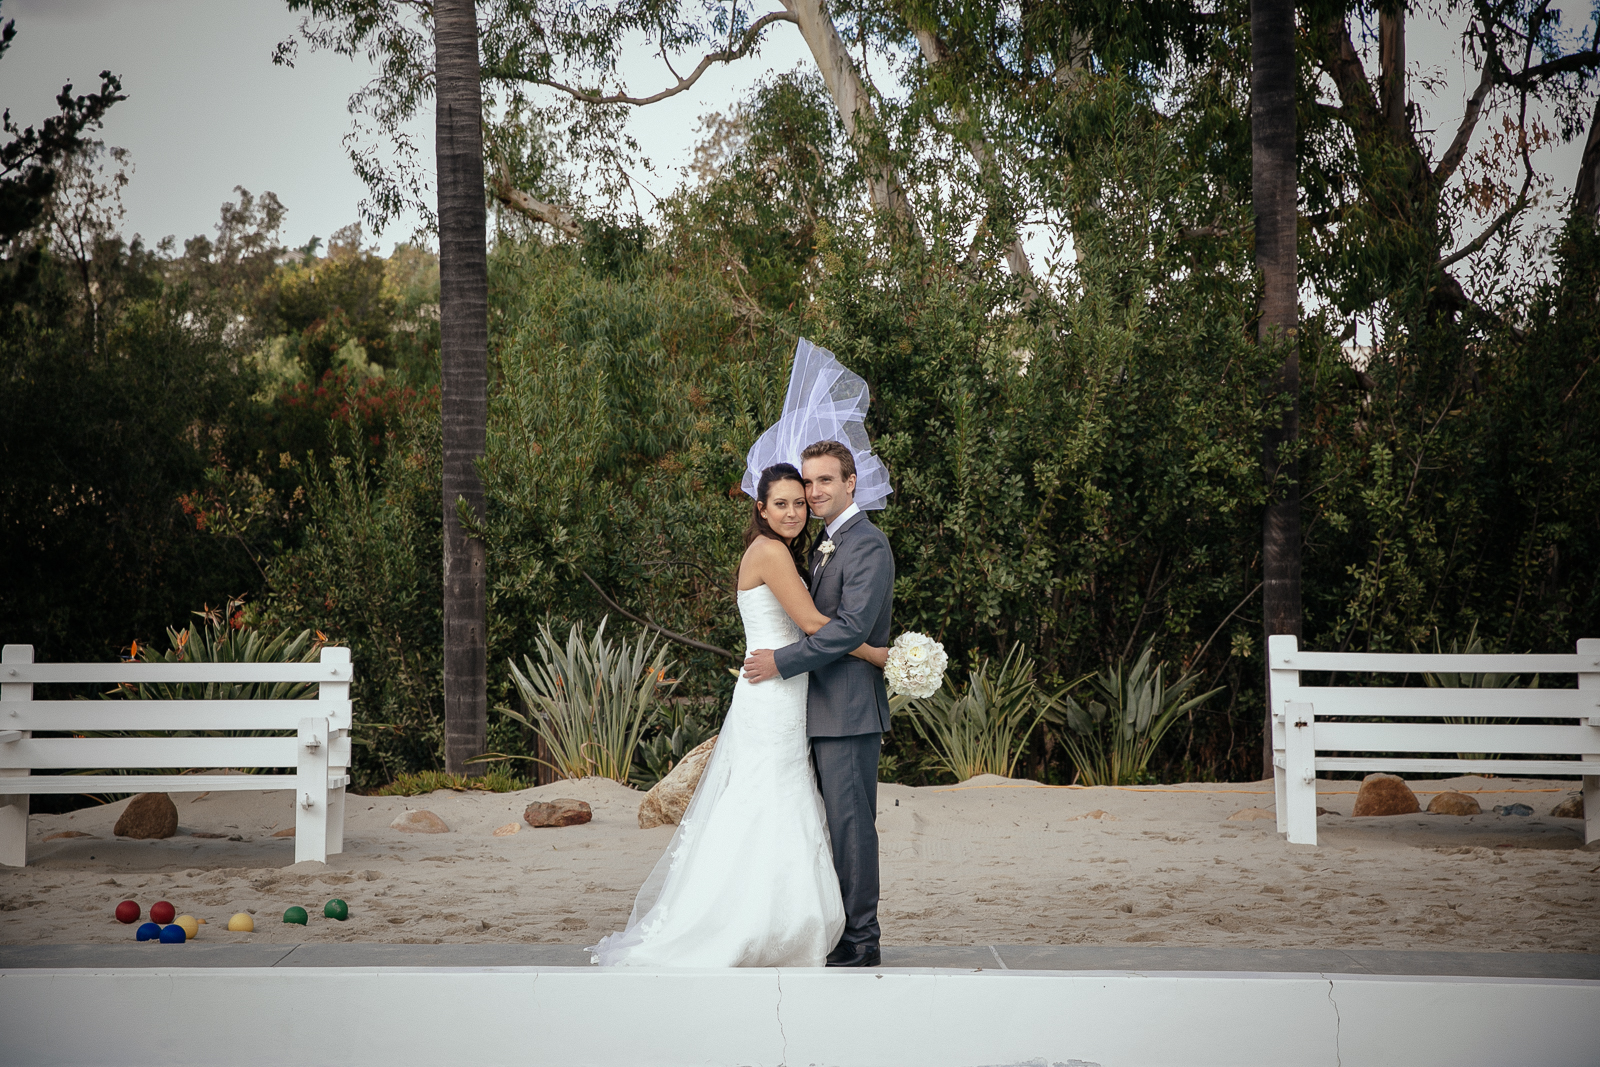 SAMANTHA_&_LUCAS_LEO_CARRILLO_LEAF_WEDDING_PHOTOGRAPHY_20147X9A8422.JPG